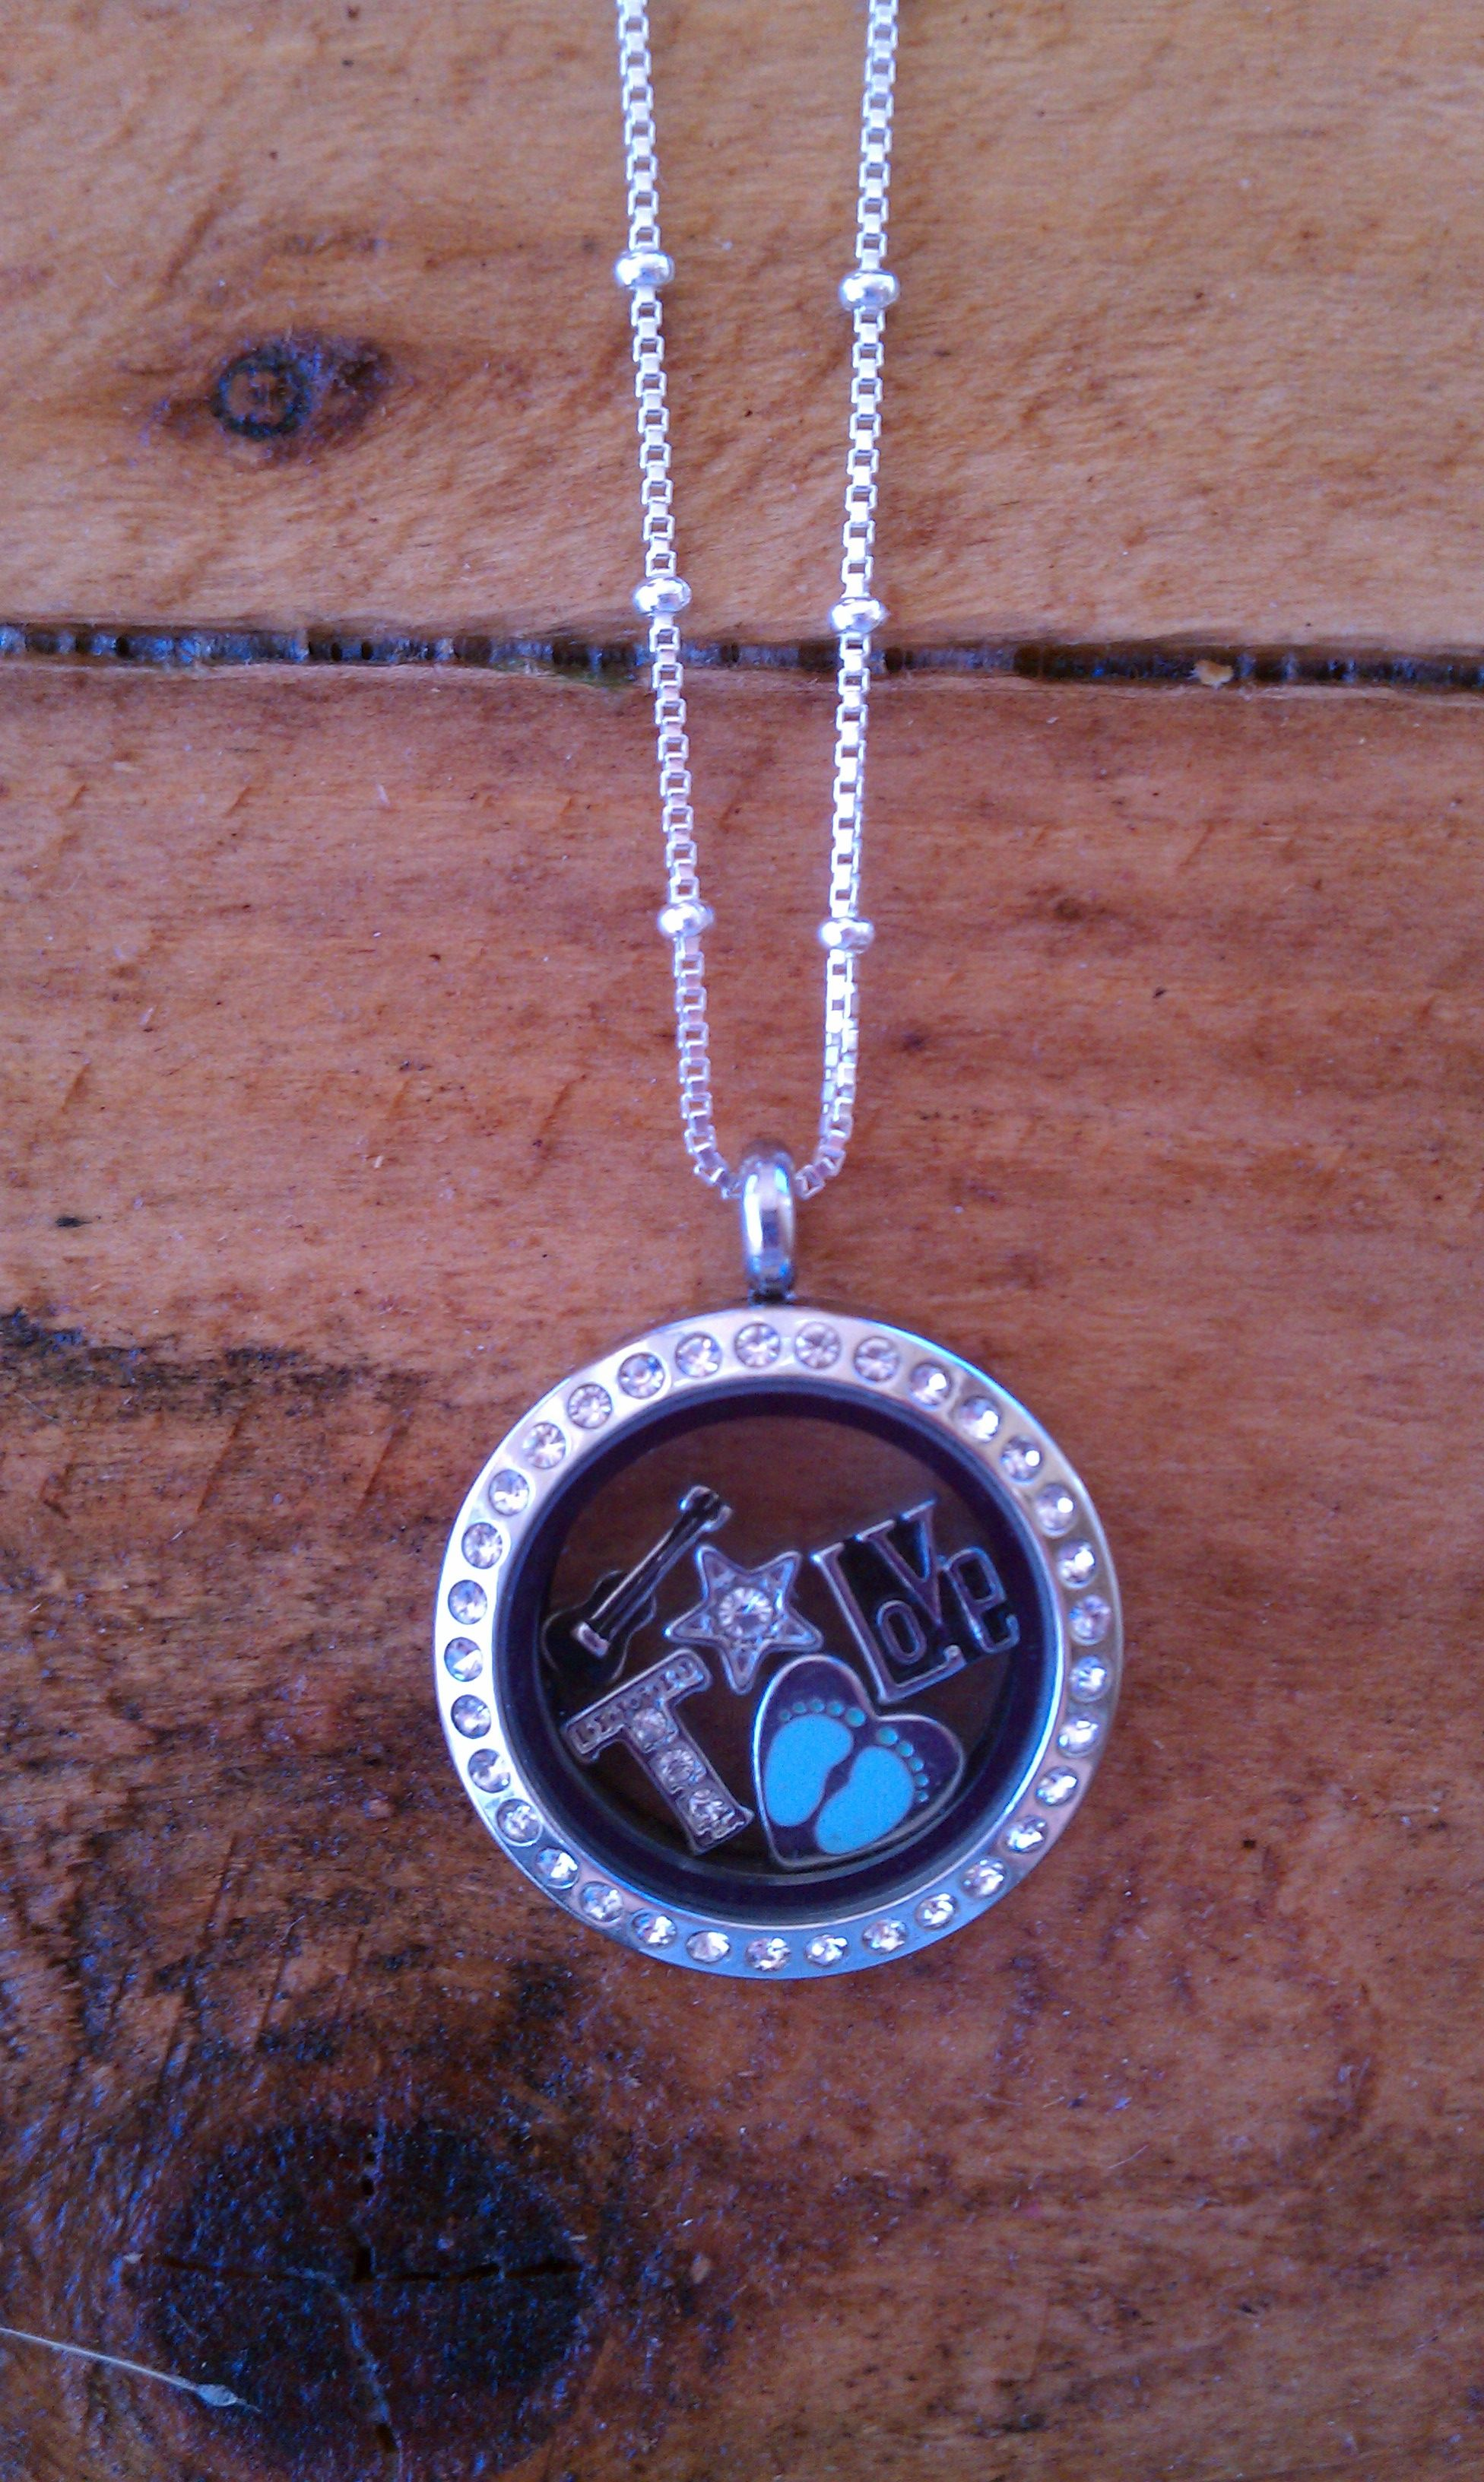 message someone new holds sea how is a custom valuable glass connected if gift and or products it show with each lockets from person to you their keep inside img locket wear resonates bracelet